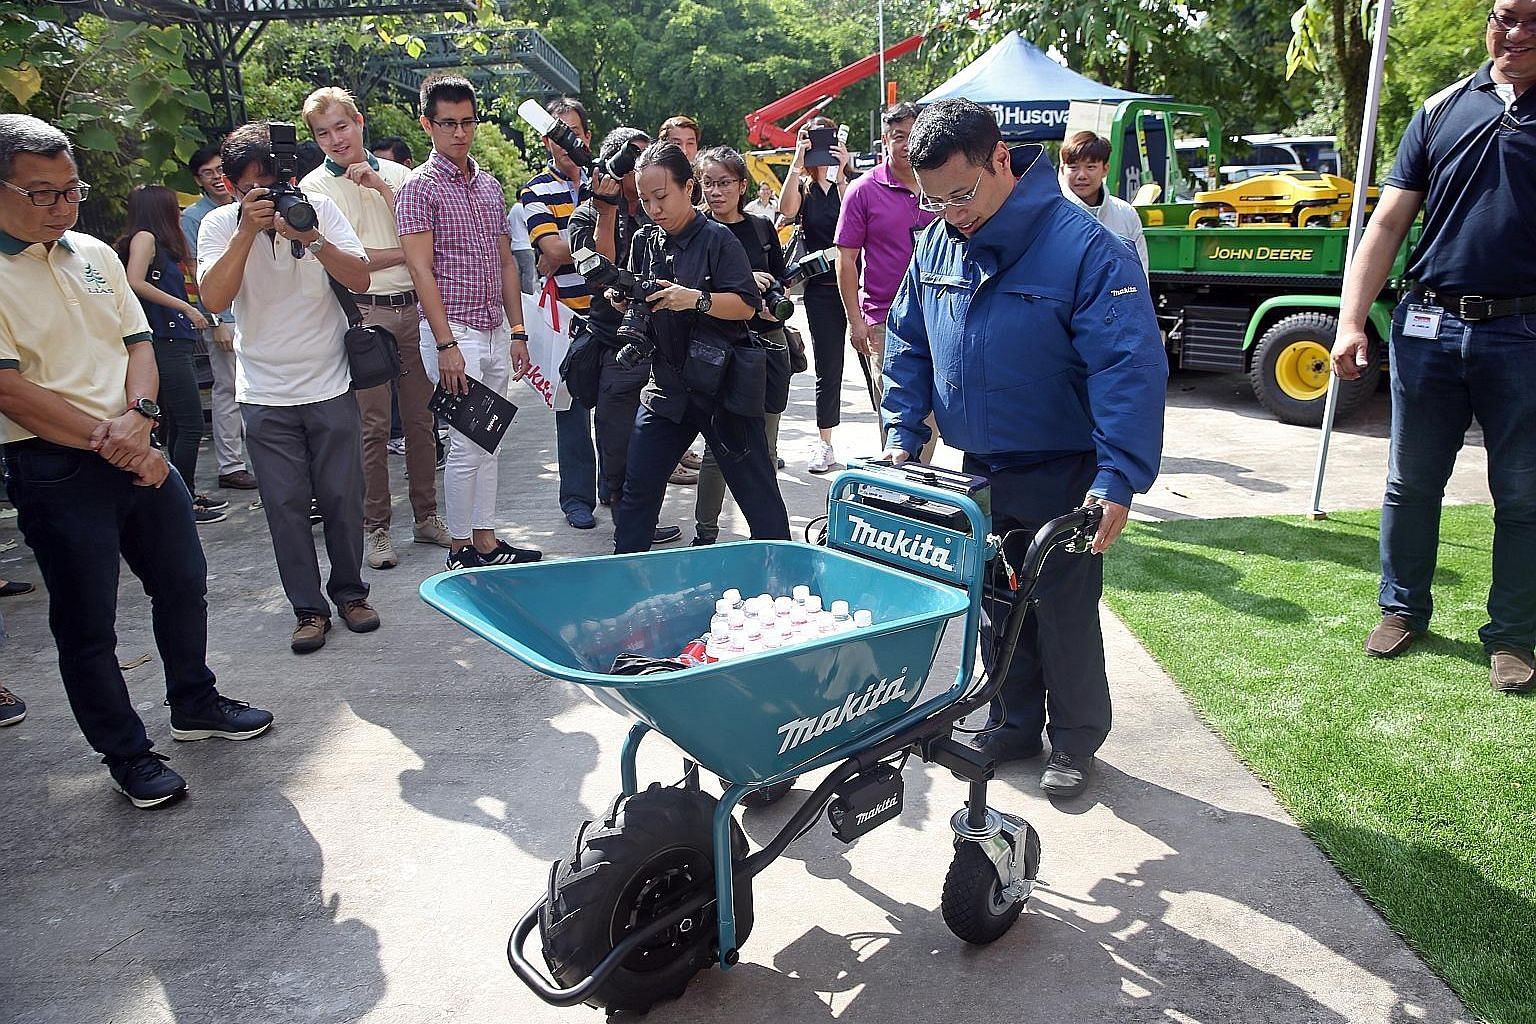 Mr Desmond Lee trying his hand at a battery-powered wheelbarrow while wearing a cordless fan jacket at the Landscape Industry Fair in HortPark yesterday. Both items are equipment used in landscaping work.